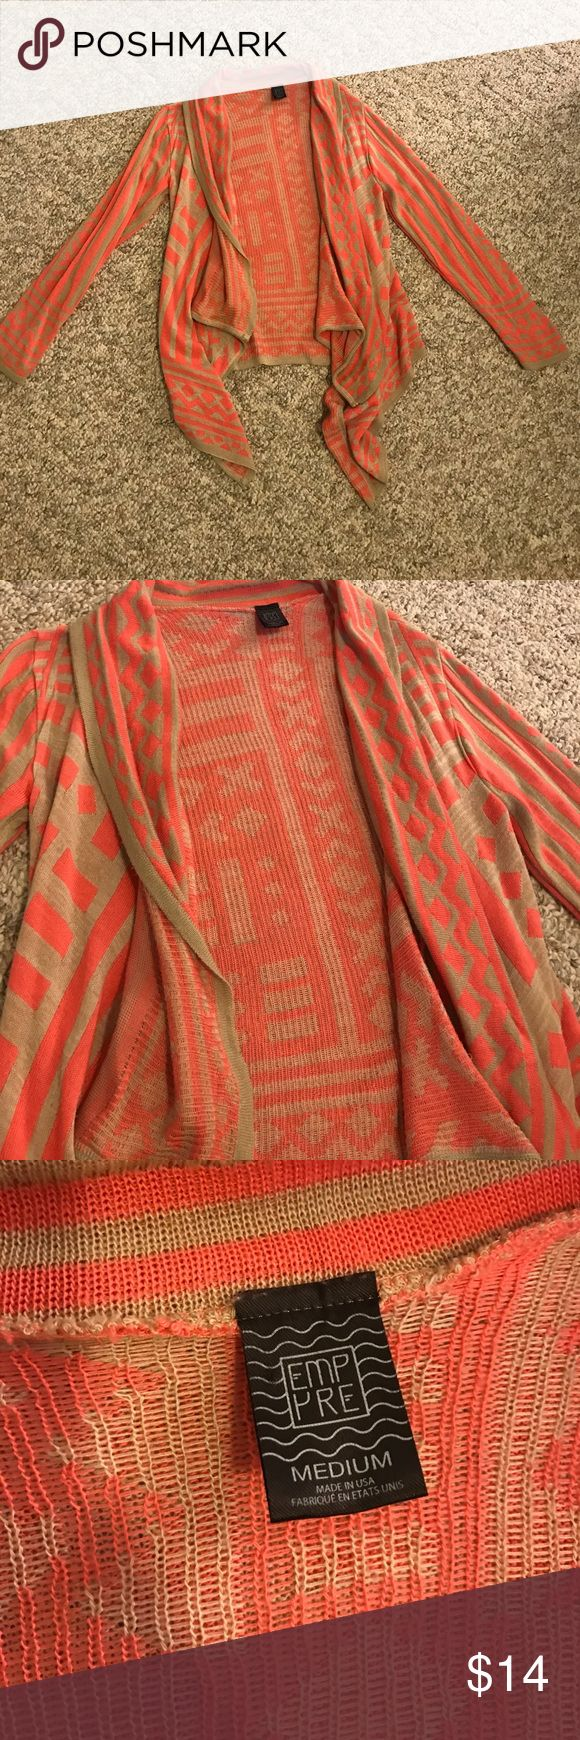 Tribal print cardigan Super cute tribal print cardigan. Some wear but still in great condition! empyre Sweaters Cardigans